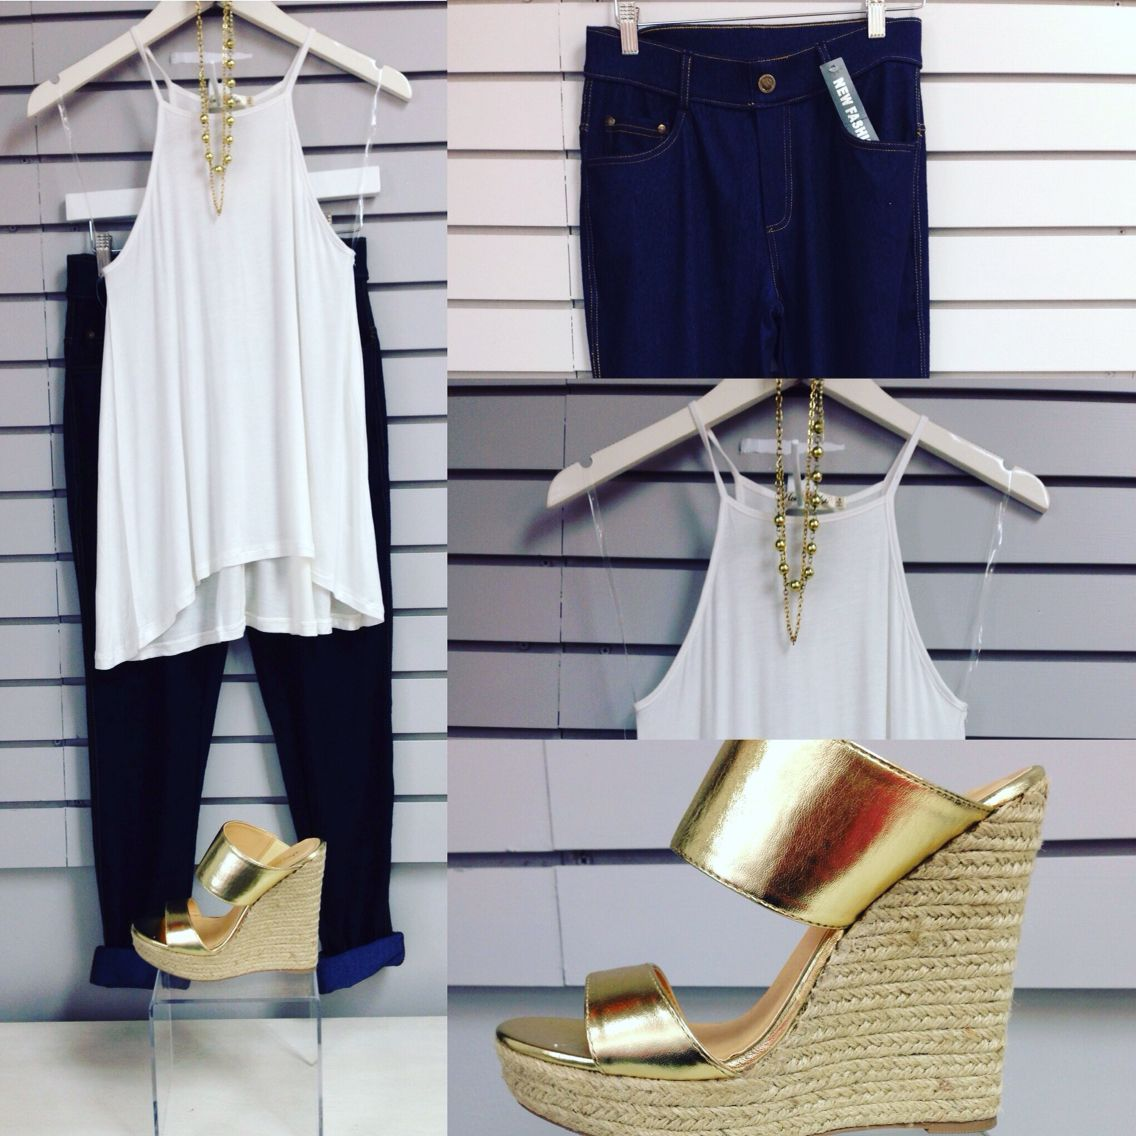 Piece by piece, let us help you create the perfect LUX outfit! #lux #luxboutique #fabuLUX luxbbb.com